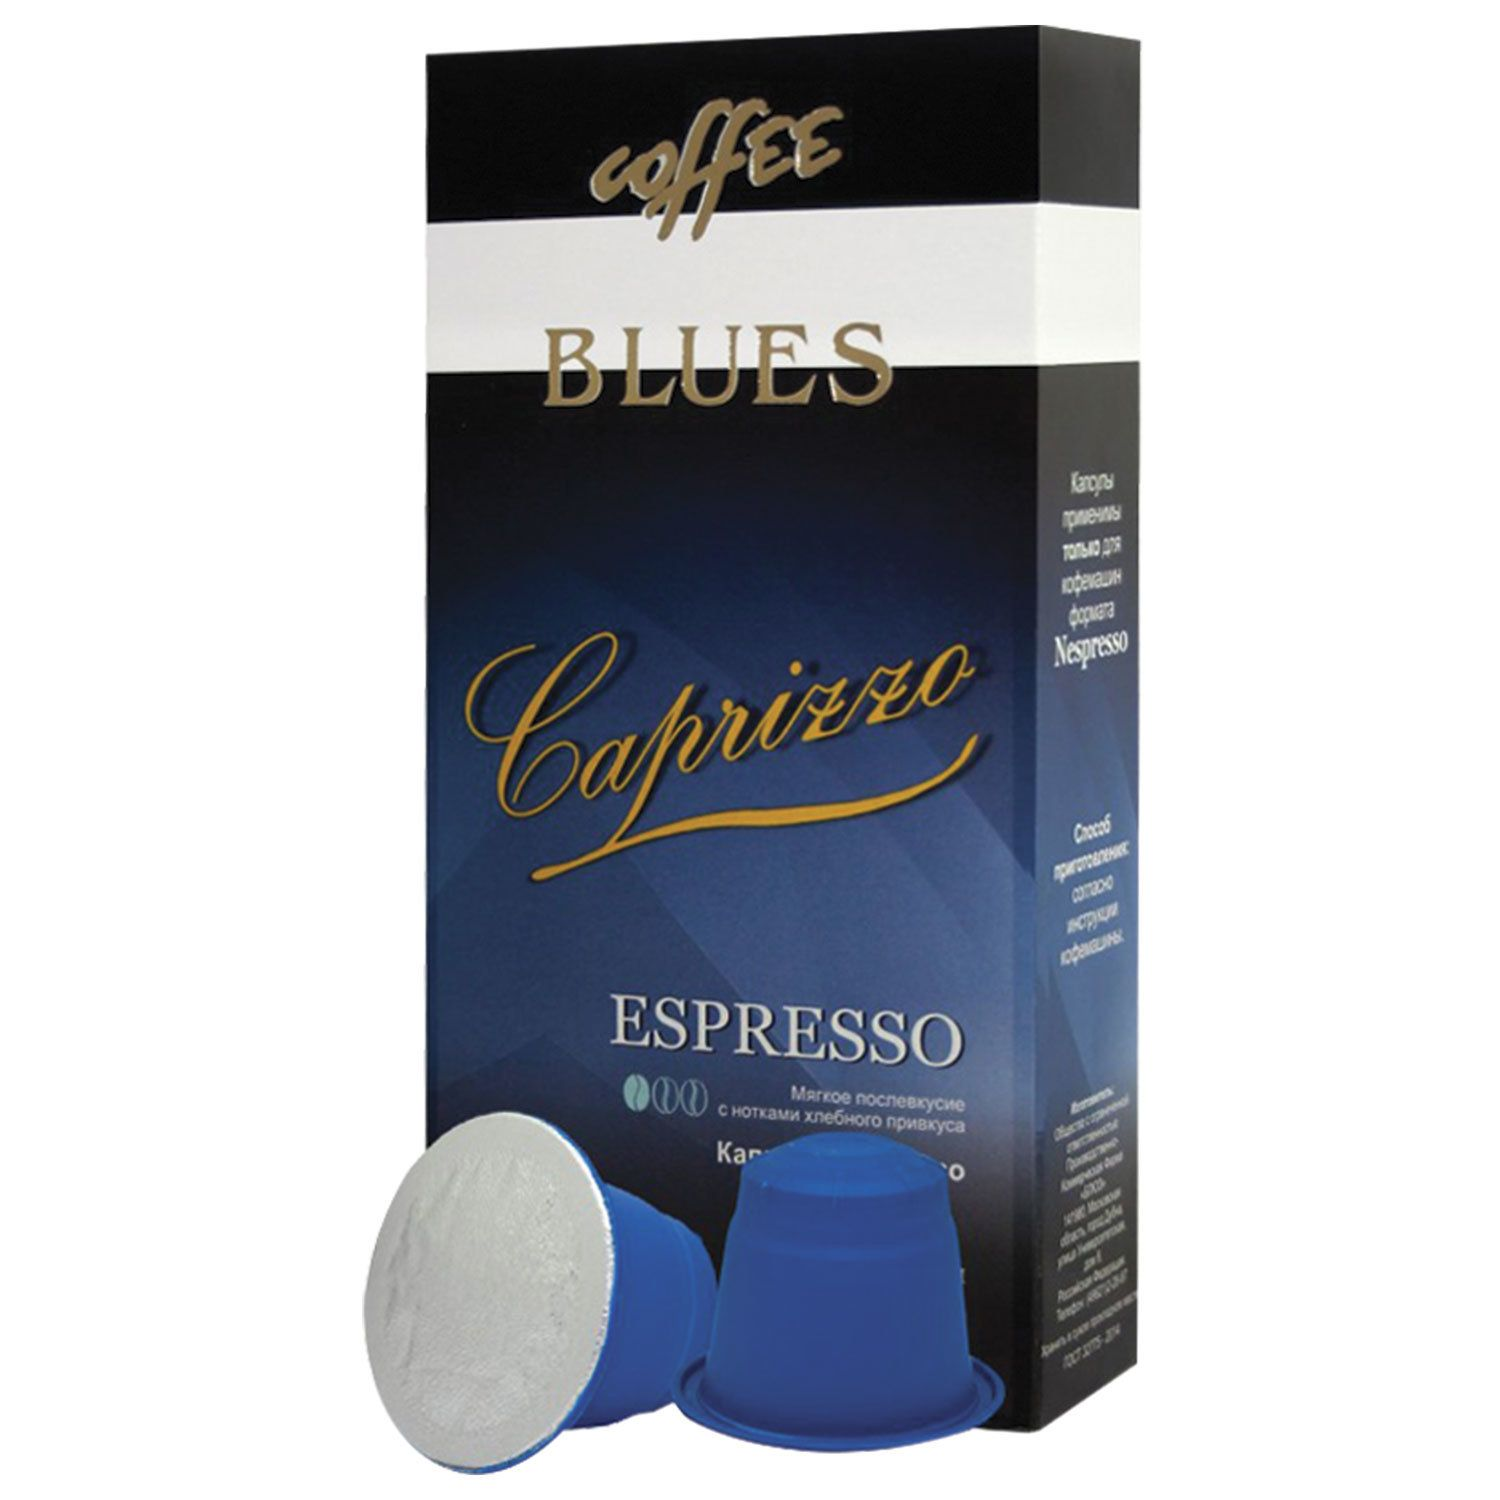 """NESPRESSO / Capsules for coffee machines """"Caprizzo"""", natural coffee, BLUES, 10 pcs. x 5 g"""